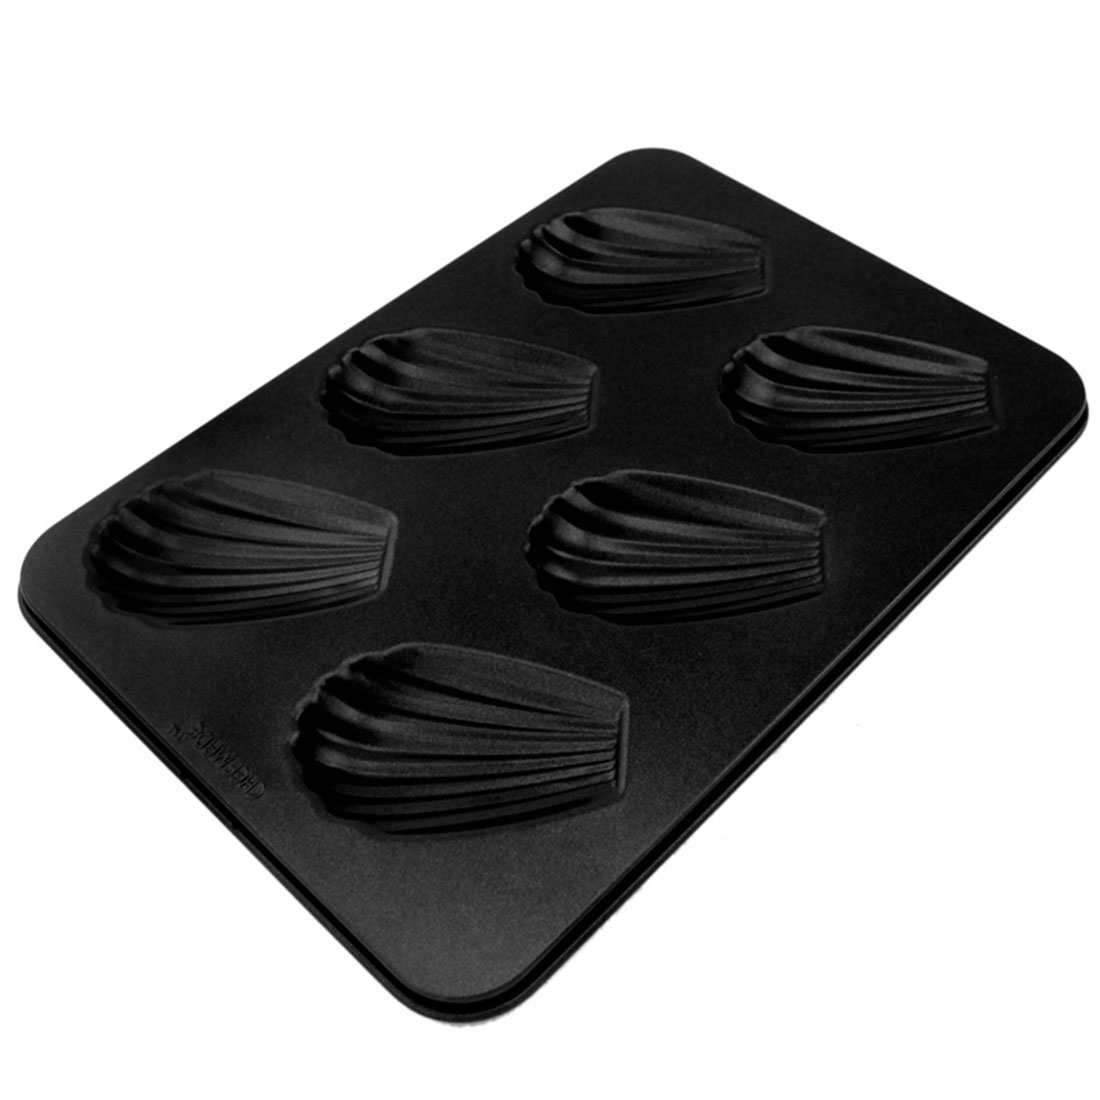 Cupcake Bread Cookie 6 Shell Shaped Compartments Baking Mold Mould Bakeware Pan